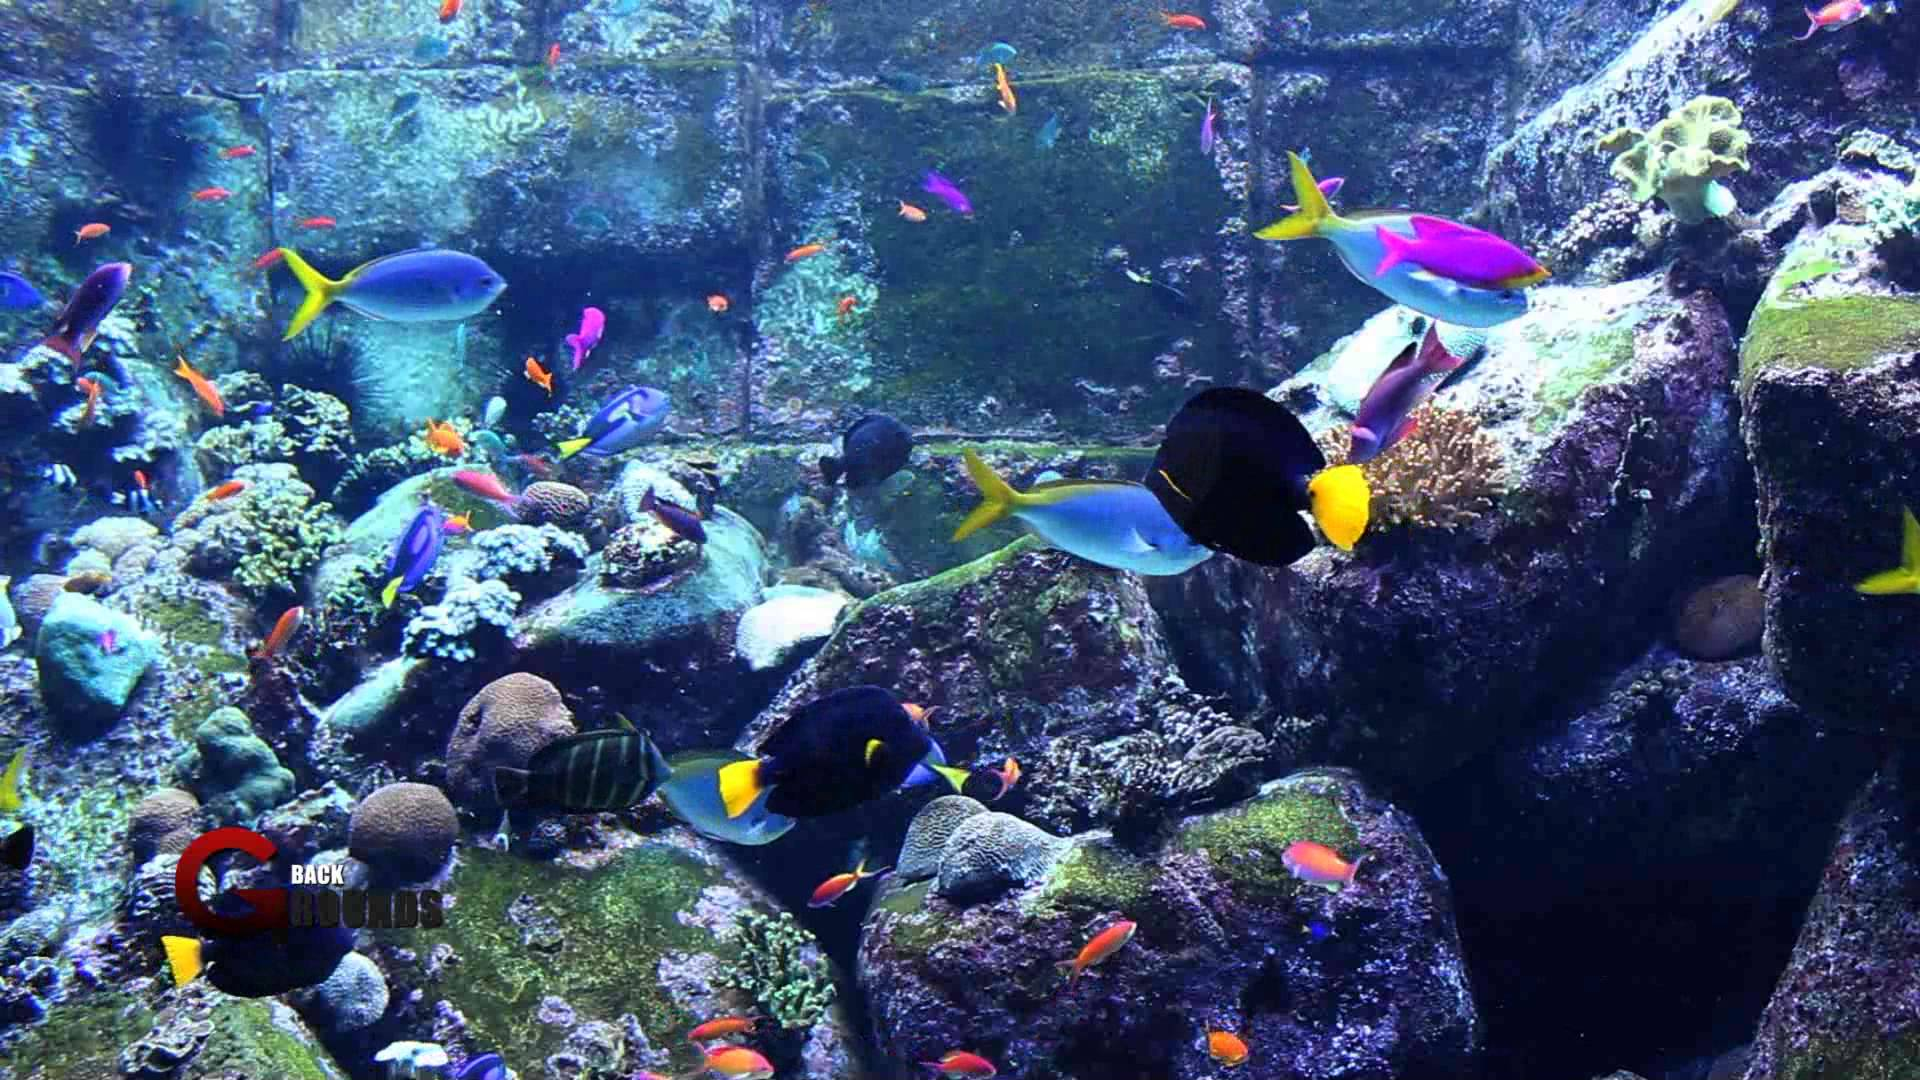 Hd aquarium wallpaper wallpapersafari for Desktop fish tank